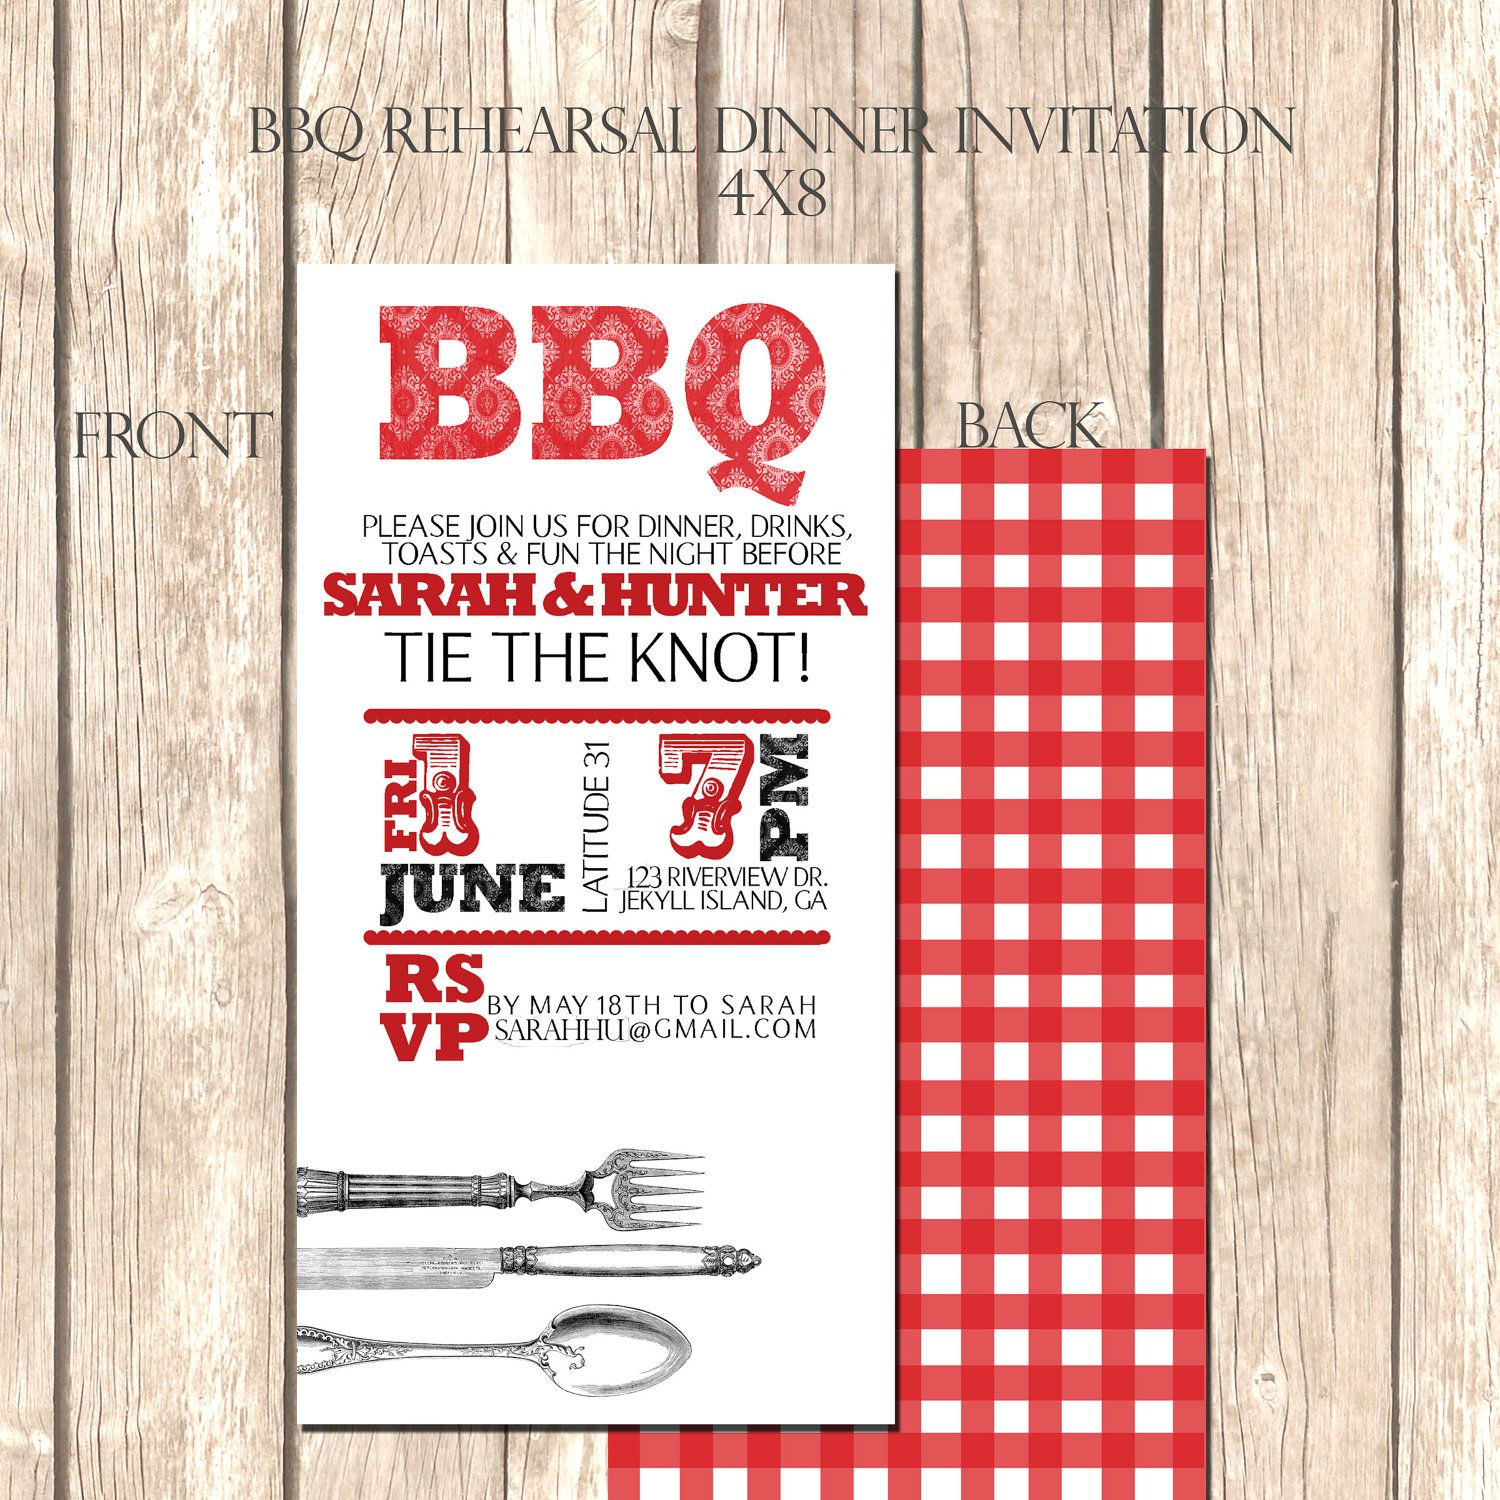 BBQ Rehearsal Dinner Invitation--25 4x8 Red Checkered Dinner ...